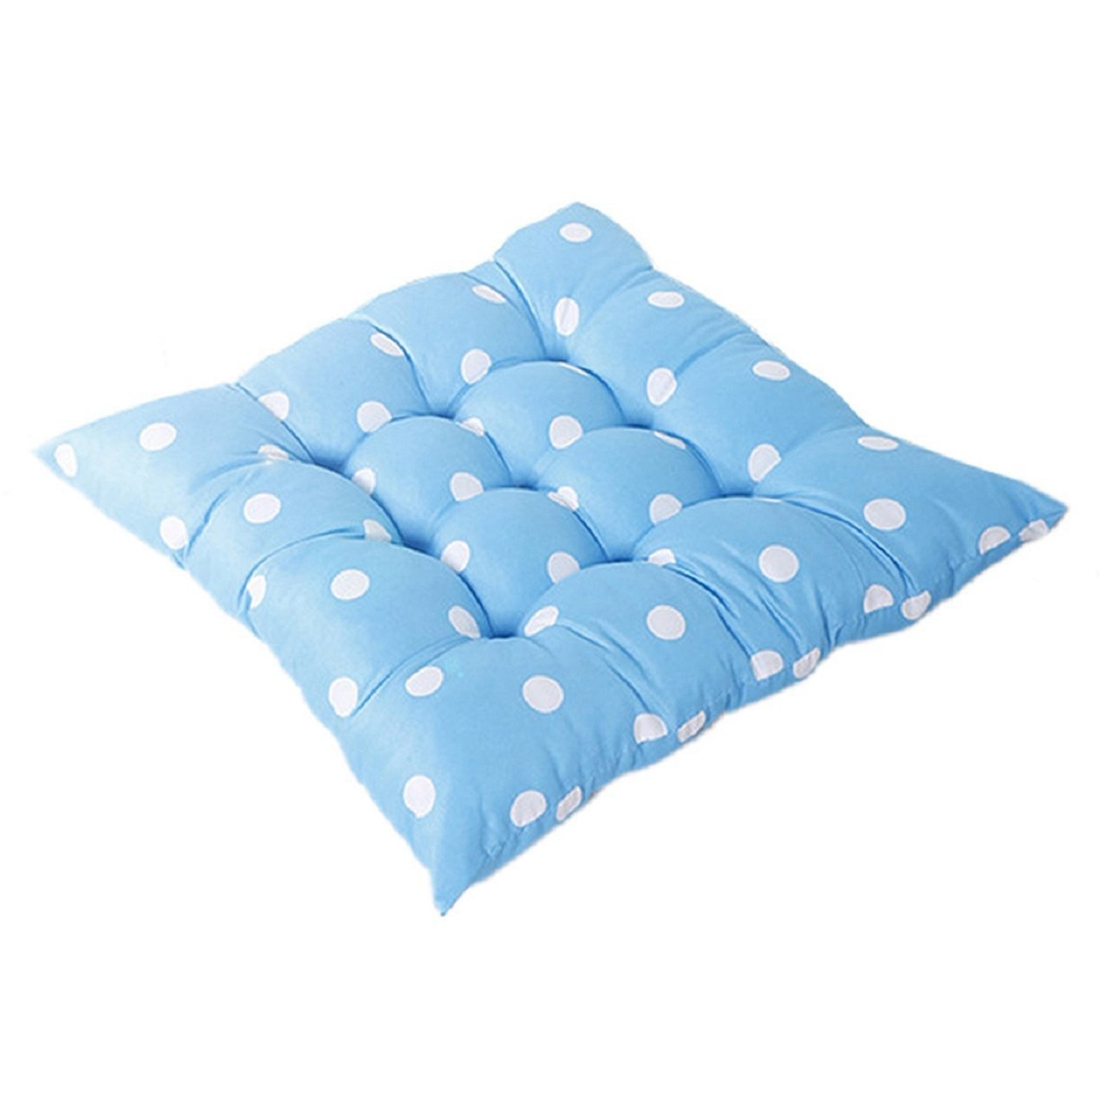 Free Shipping 40 40cm Chair Pad Cushion Pearl Cotton: Home Office Square Cotton Polka Dot Seat Cushion Buttock